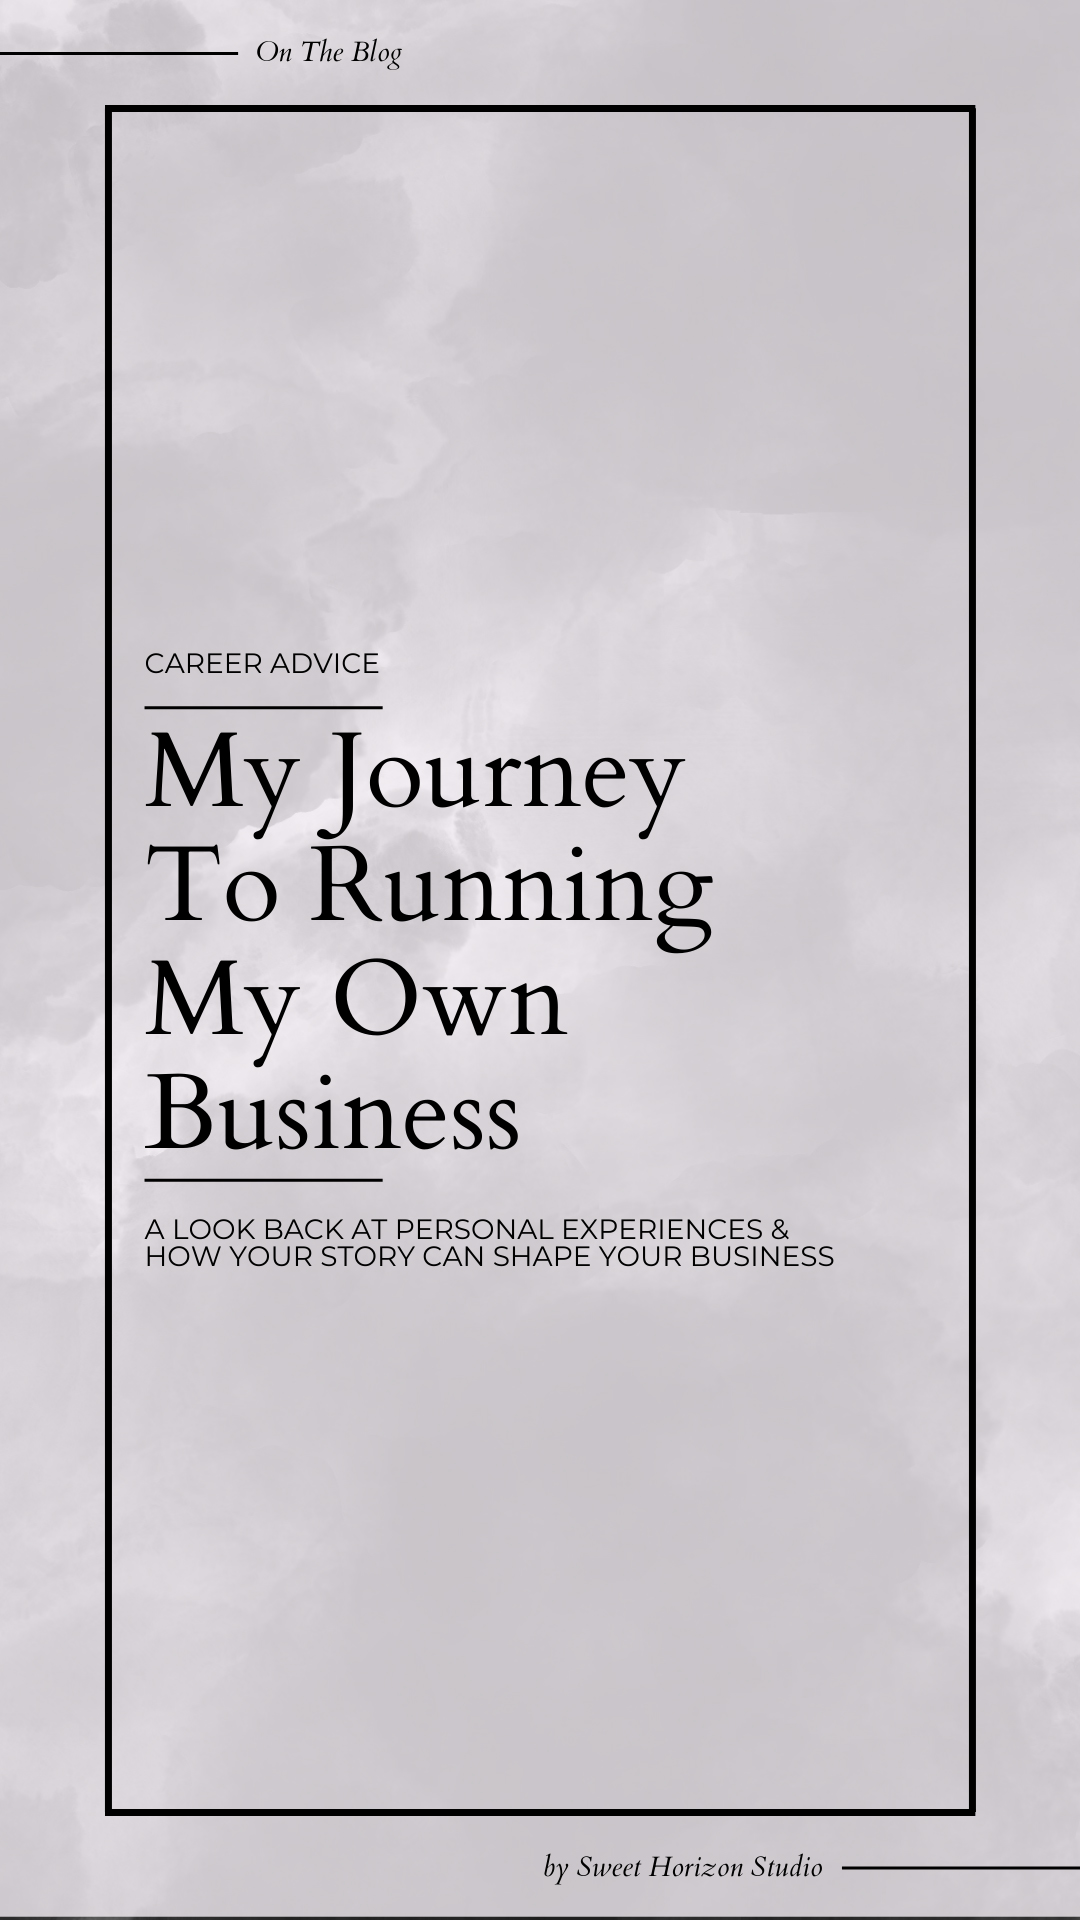 My Journey to Running My Own Business from www.sweethorizonblog.com